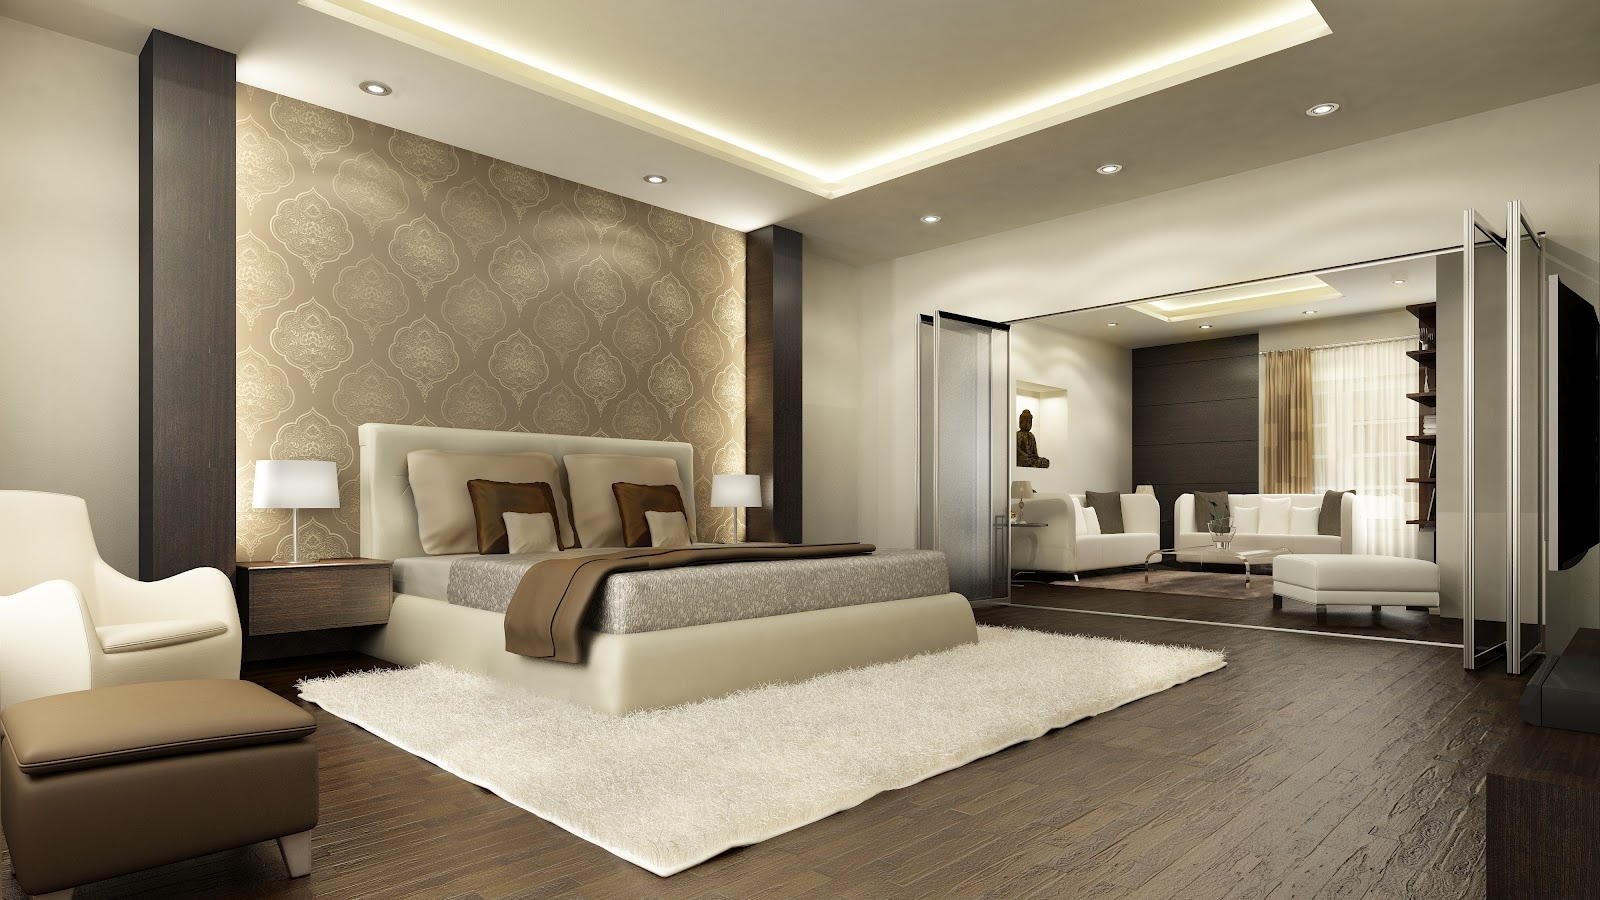 Modern Bedroom Interior : Sophisticated Penthouse Master Bedroom Interior Design  Ideas Apartment master bedroom interior design ideas